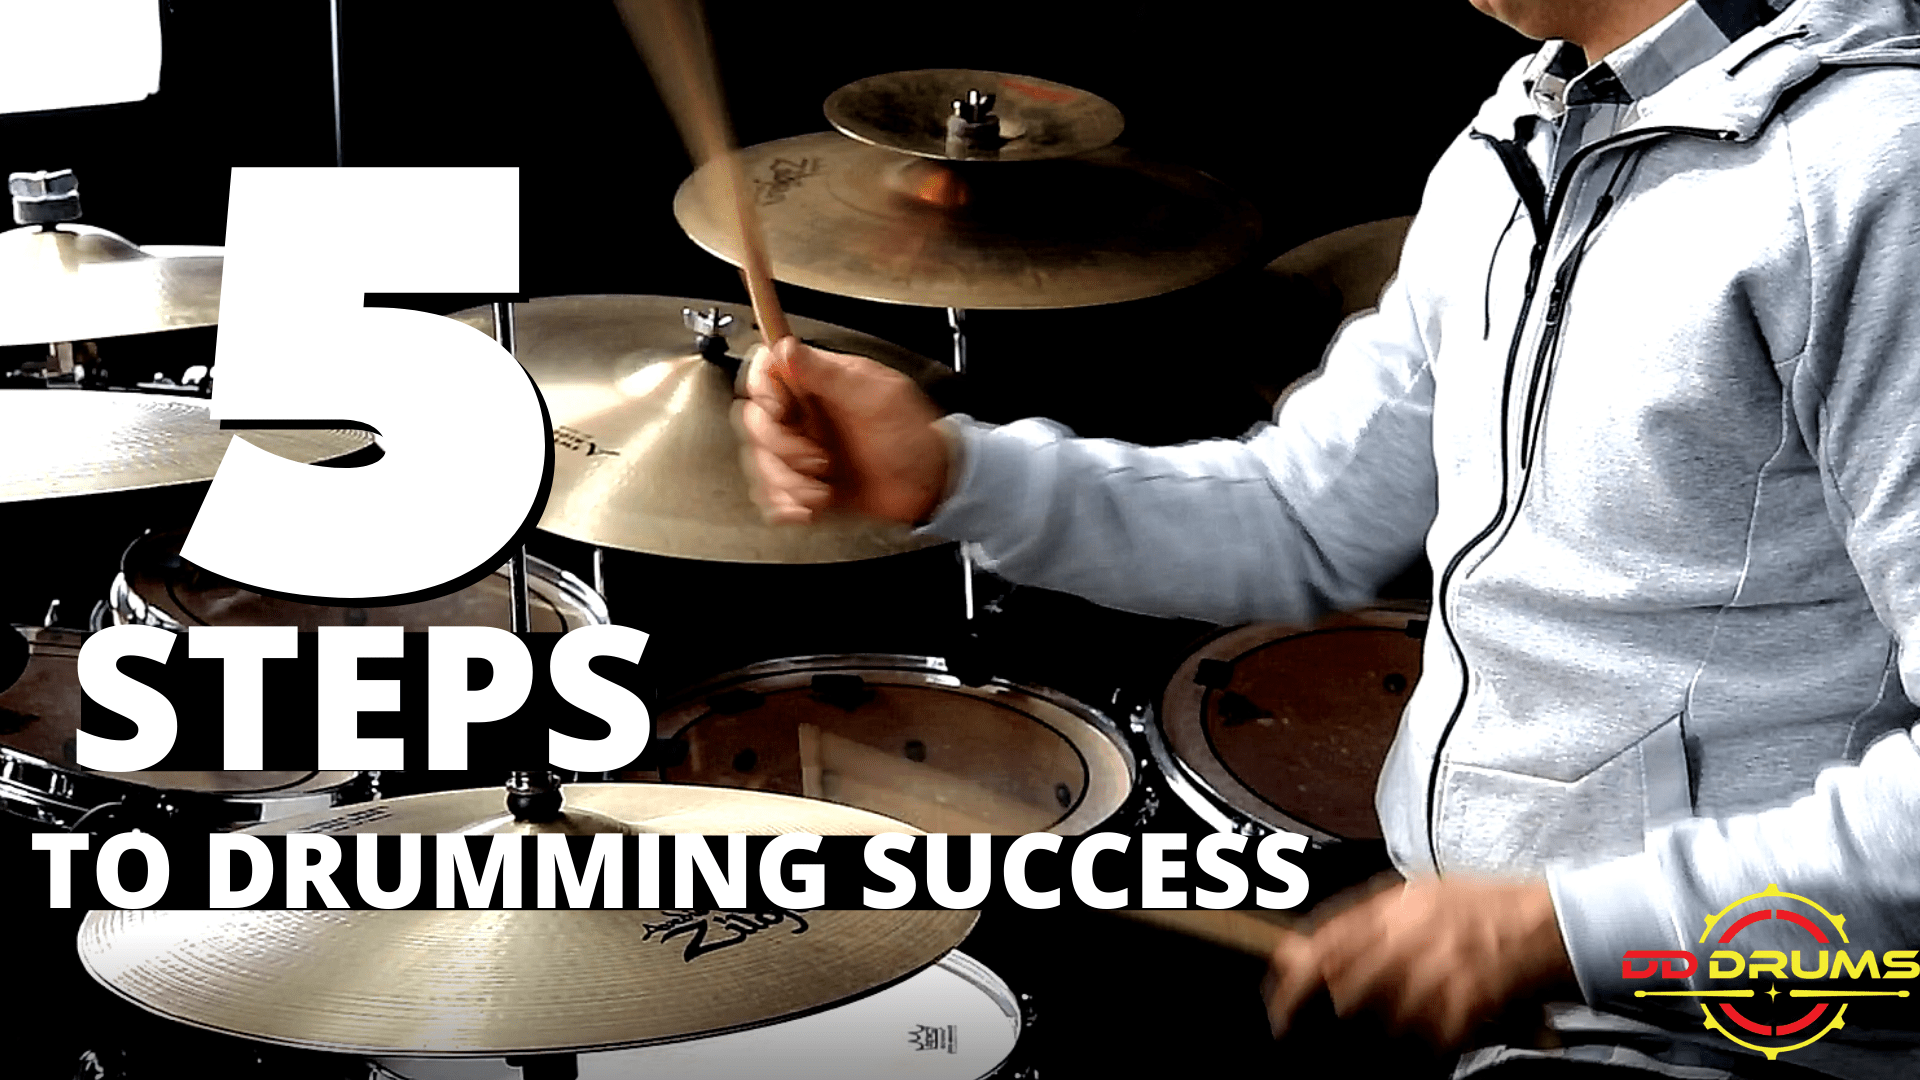 5 Steps to massively improve your drumming